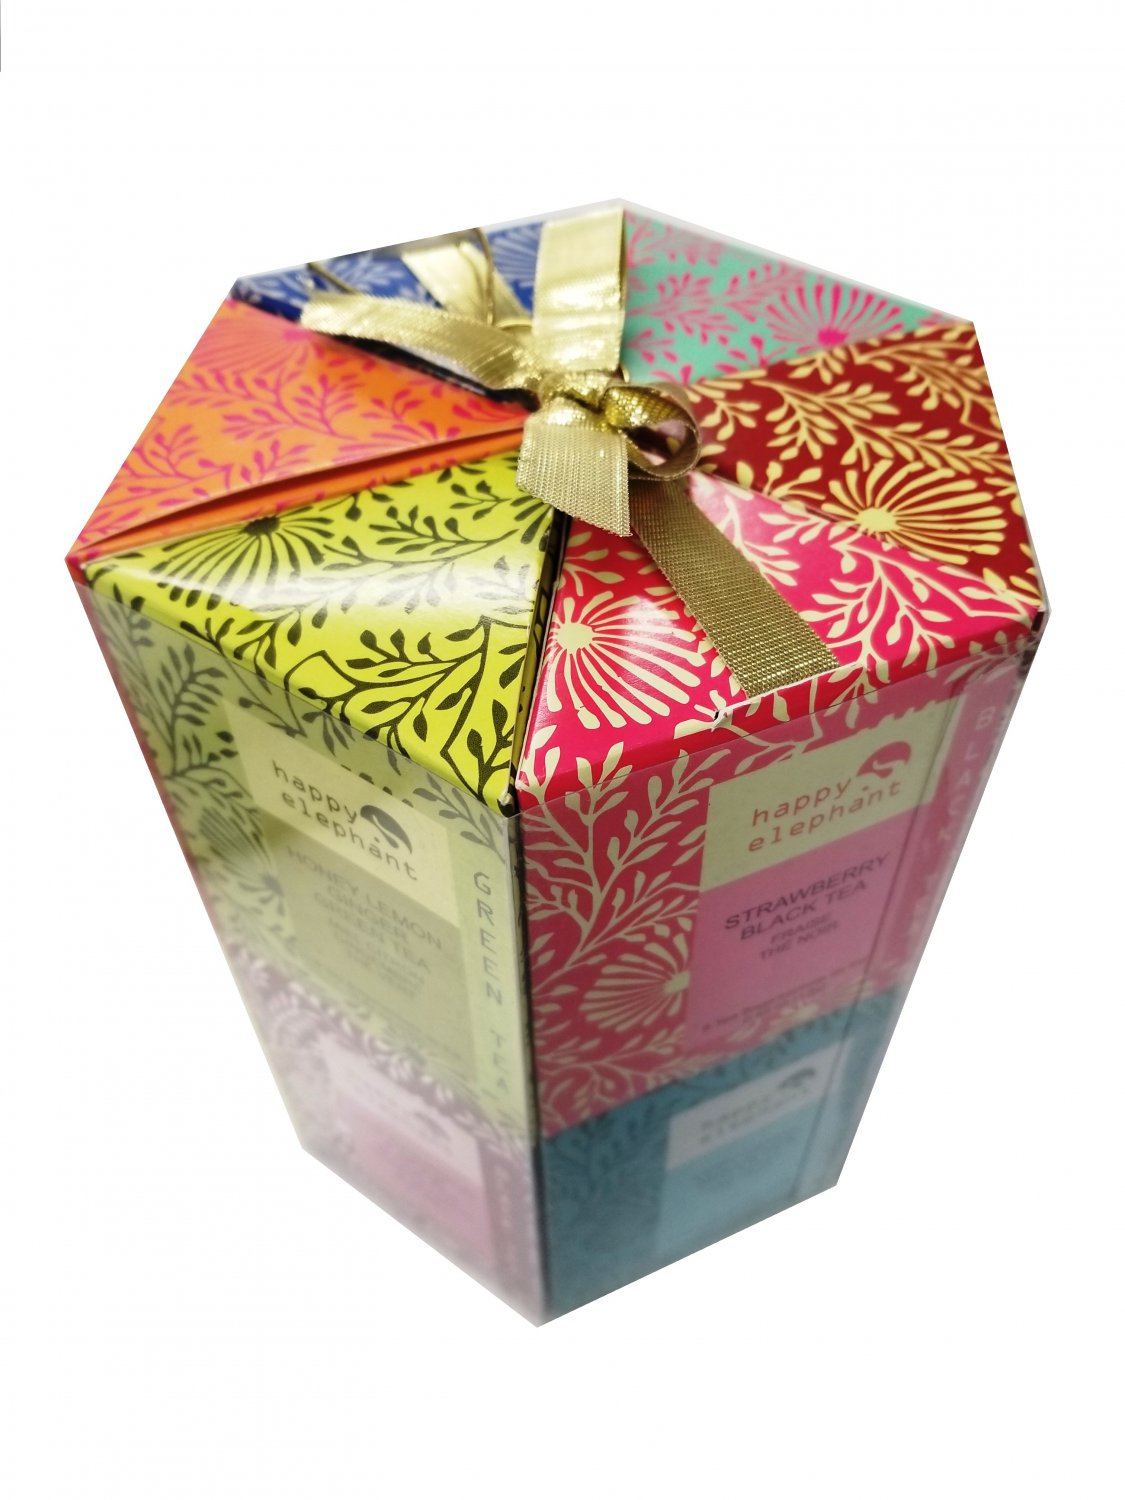 Specialty Tea Selection Happy Elephant Gift Box 96 tea bags - 12 flavors Easter Gift Idea